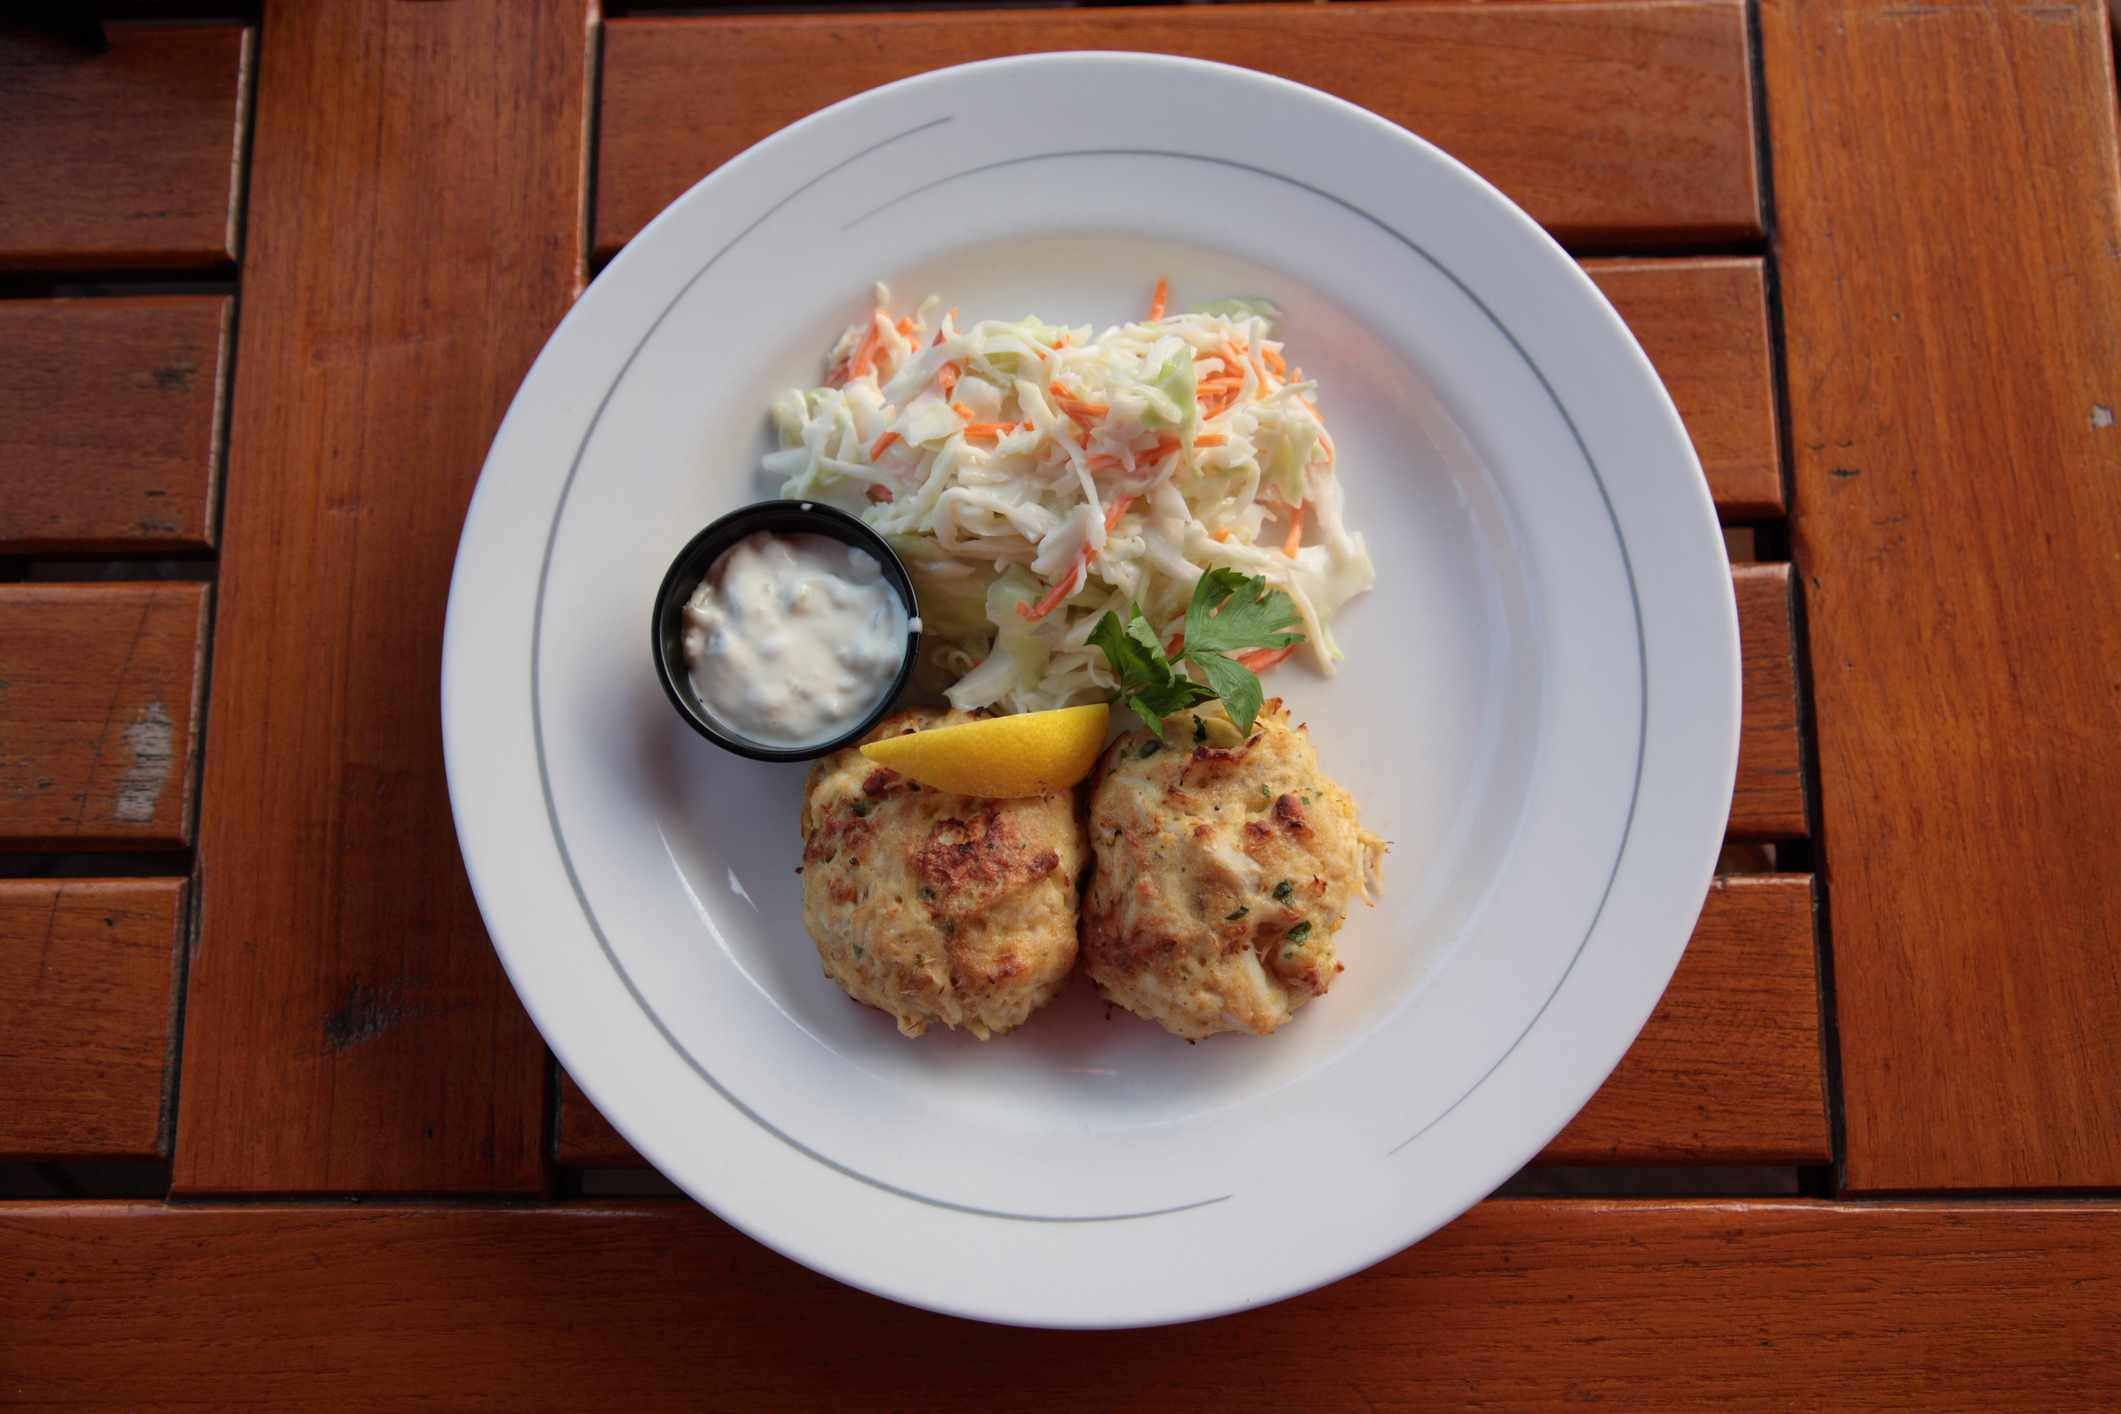 Typical Maryland Crab Cakes, from a famous restaurant at inner harbour, in Baltimore